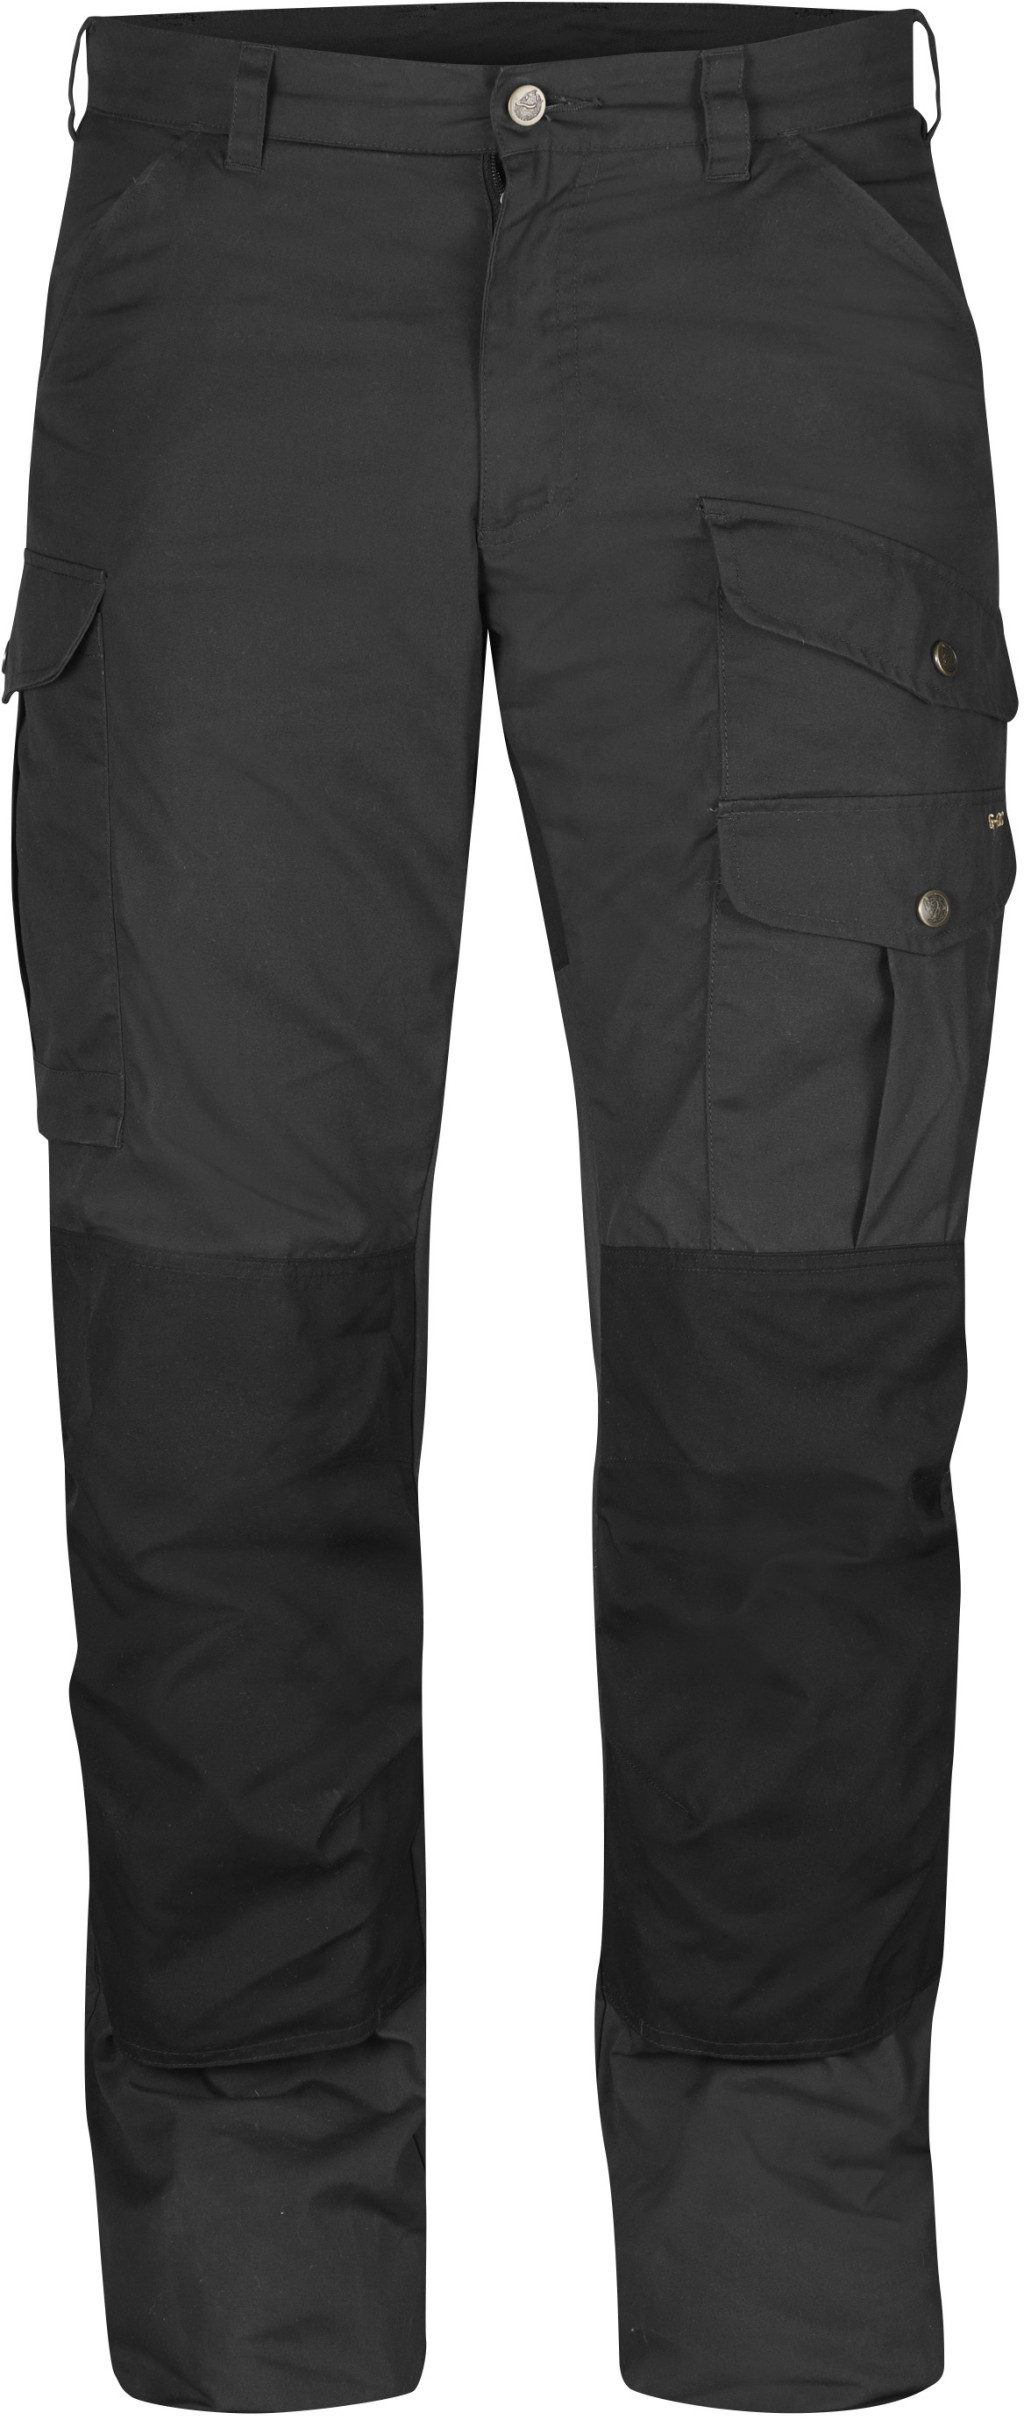 FjallRaven Barents Pro Winter